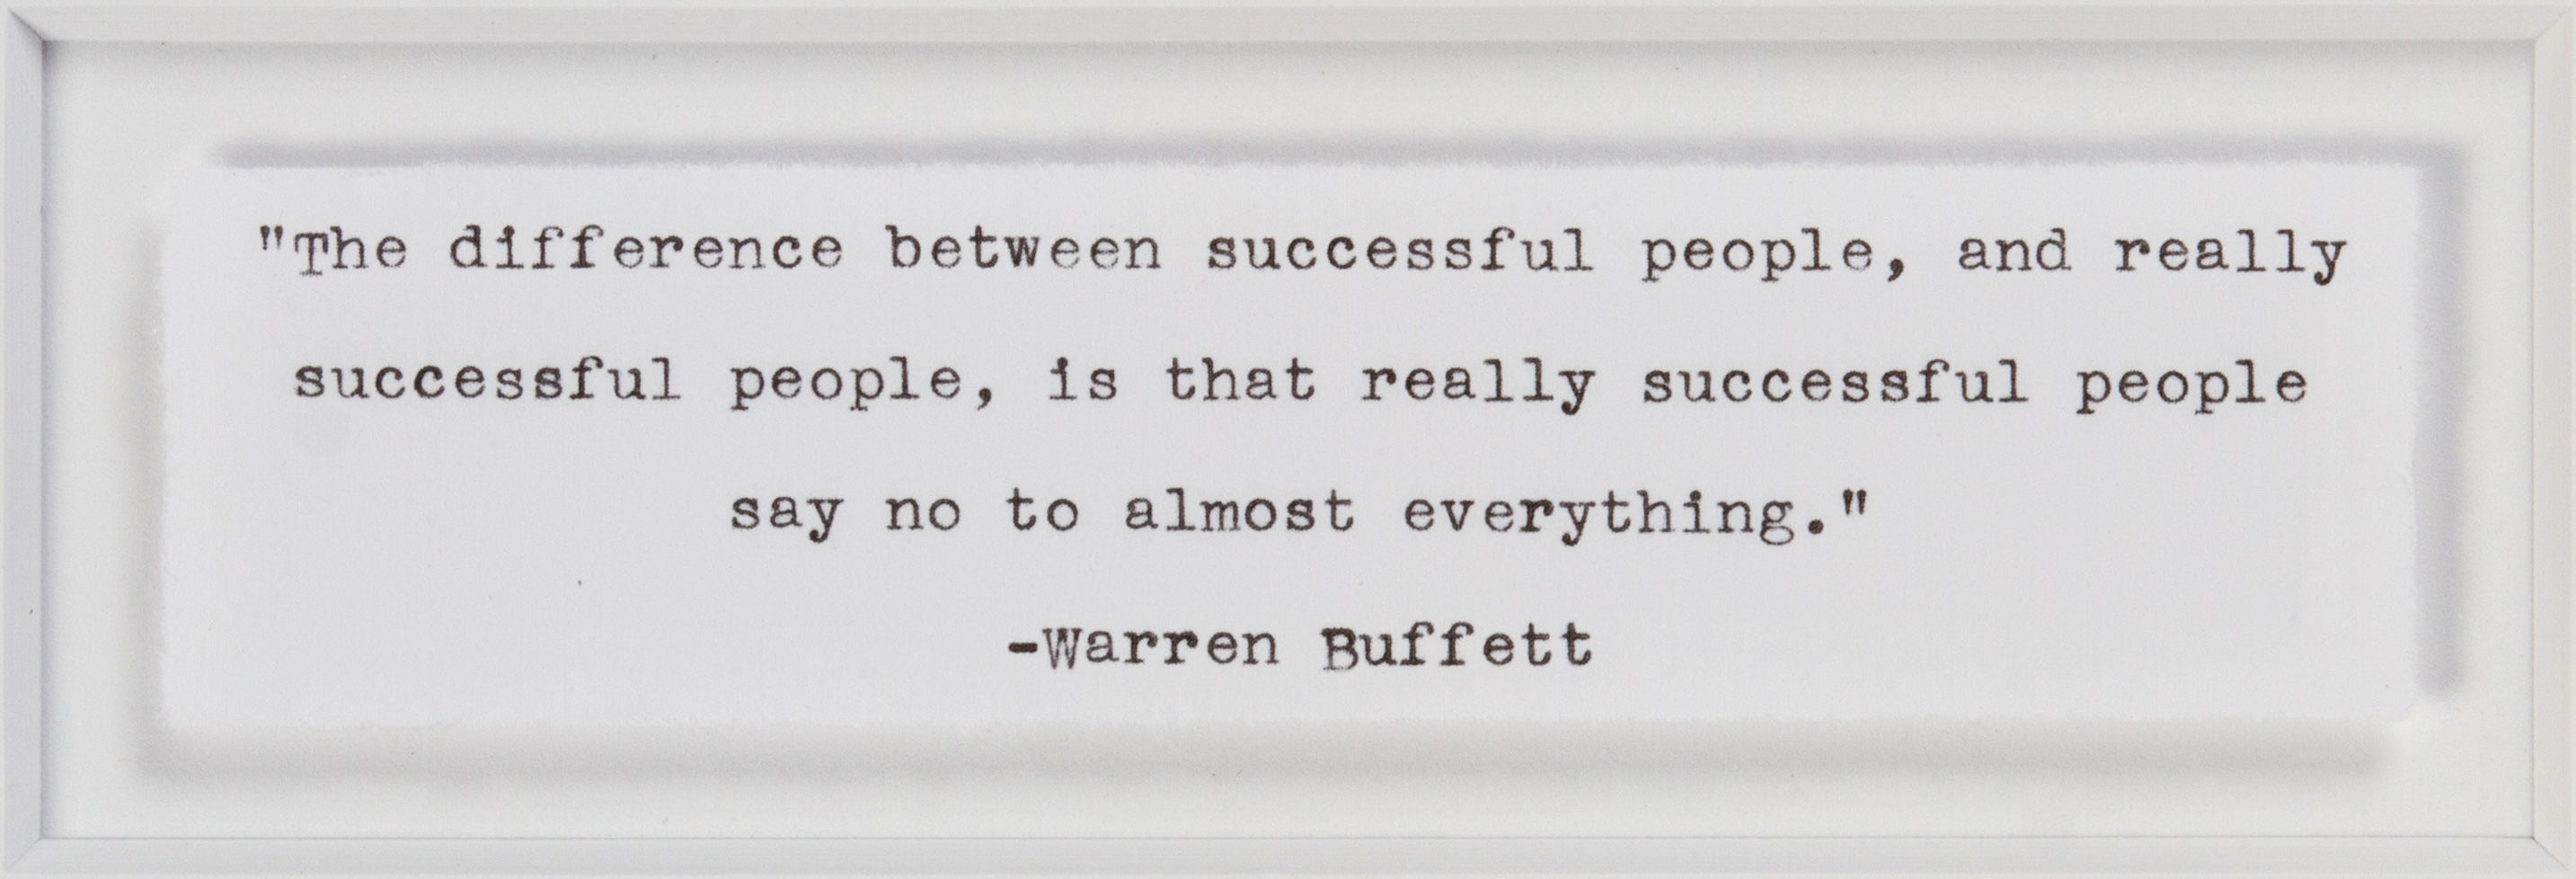 "Signed Warren Buffett: ""The difference between successful people and really successful people is..."""